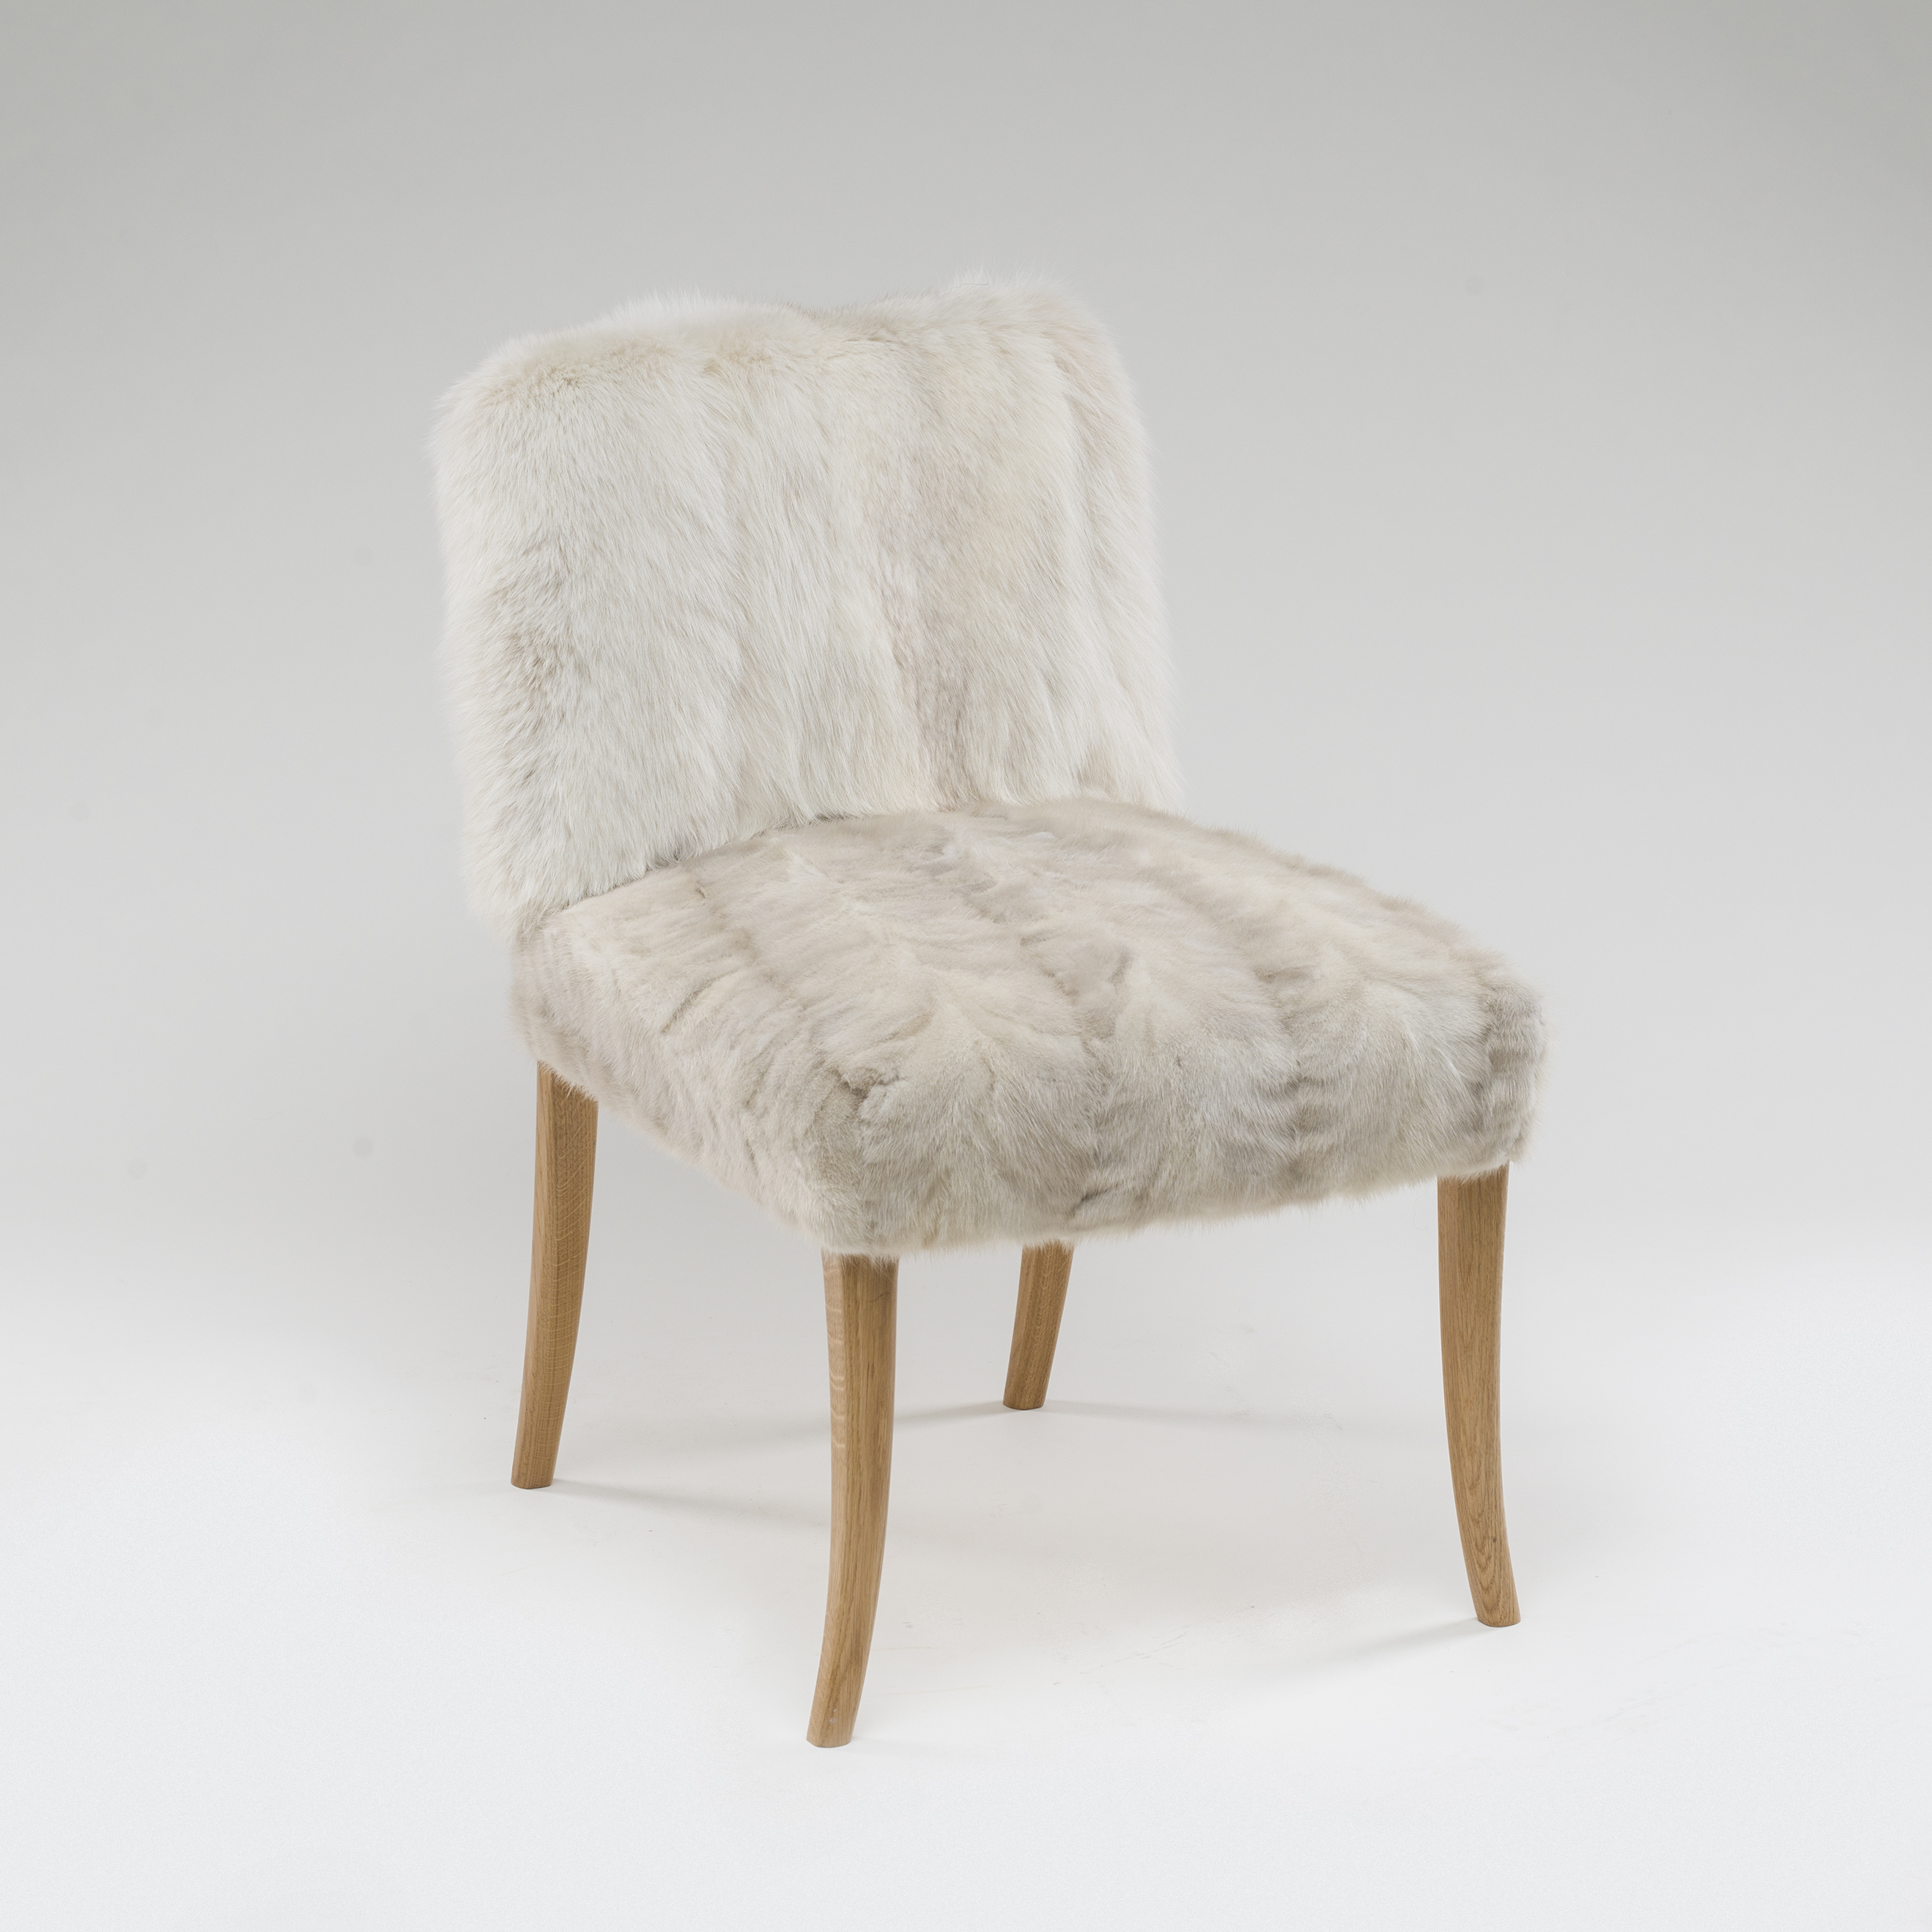 mink chair.jpg